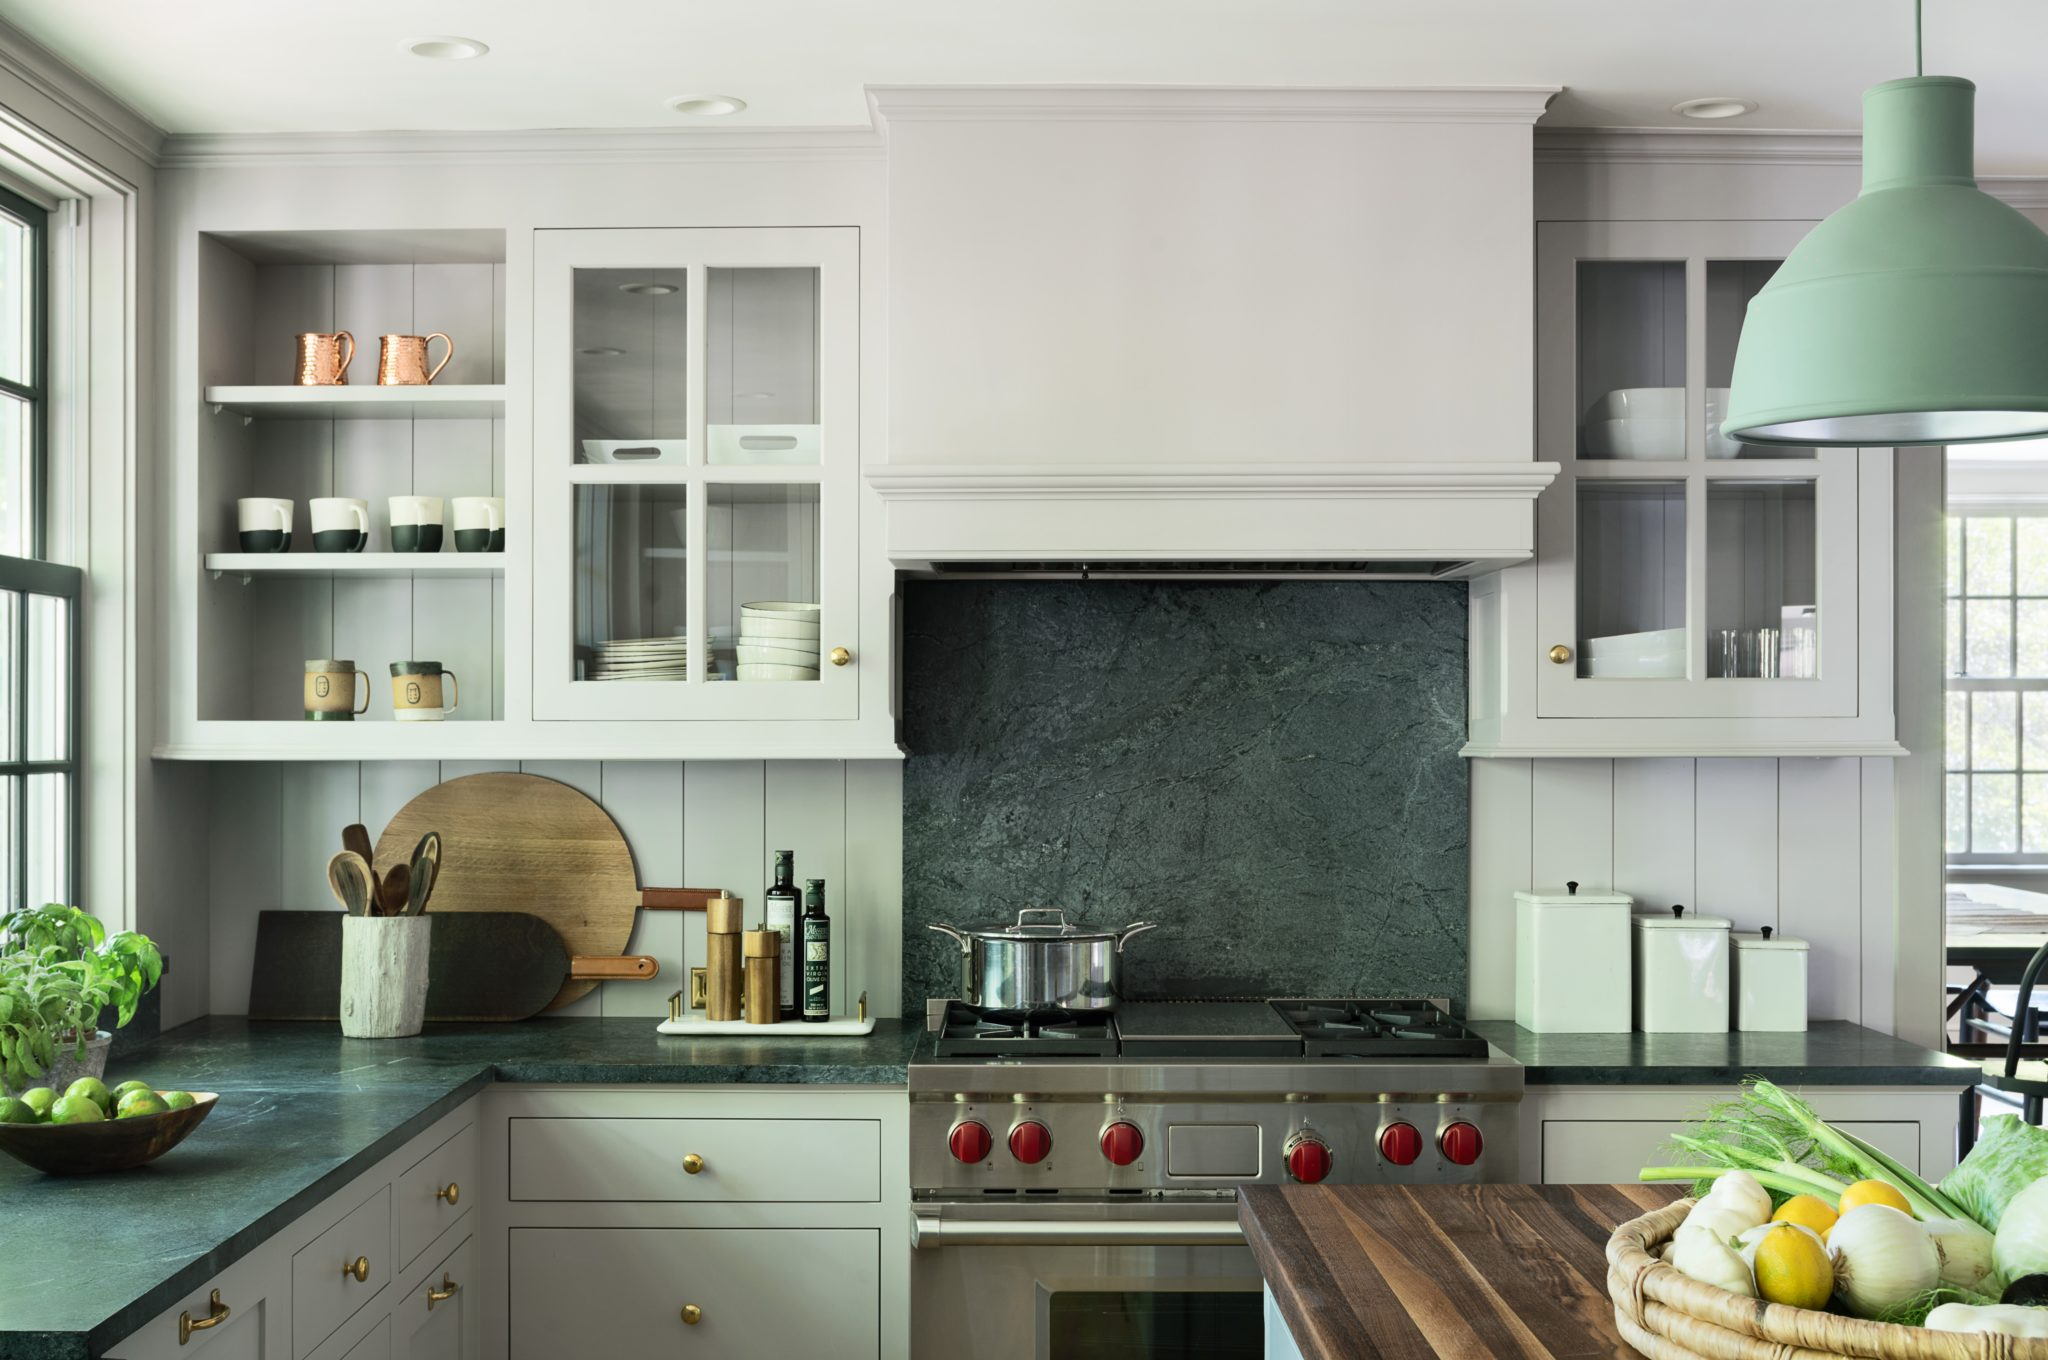 The kitchen counters and backsplash are stone, the range is by Wolf, and the pendant light is by Muuto.